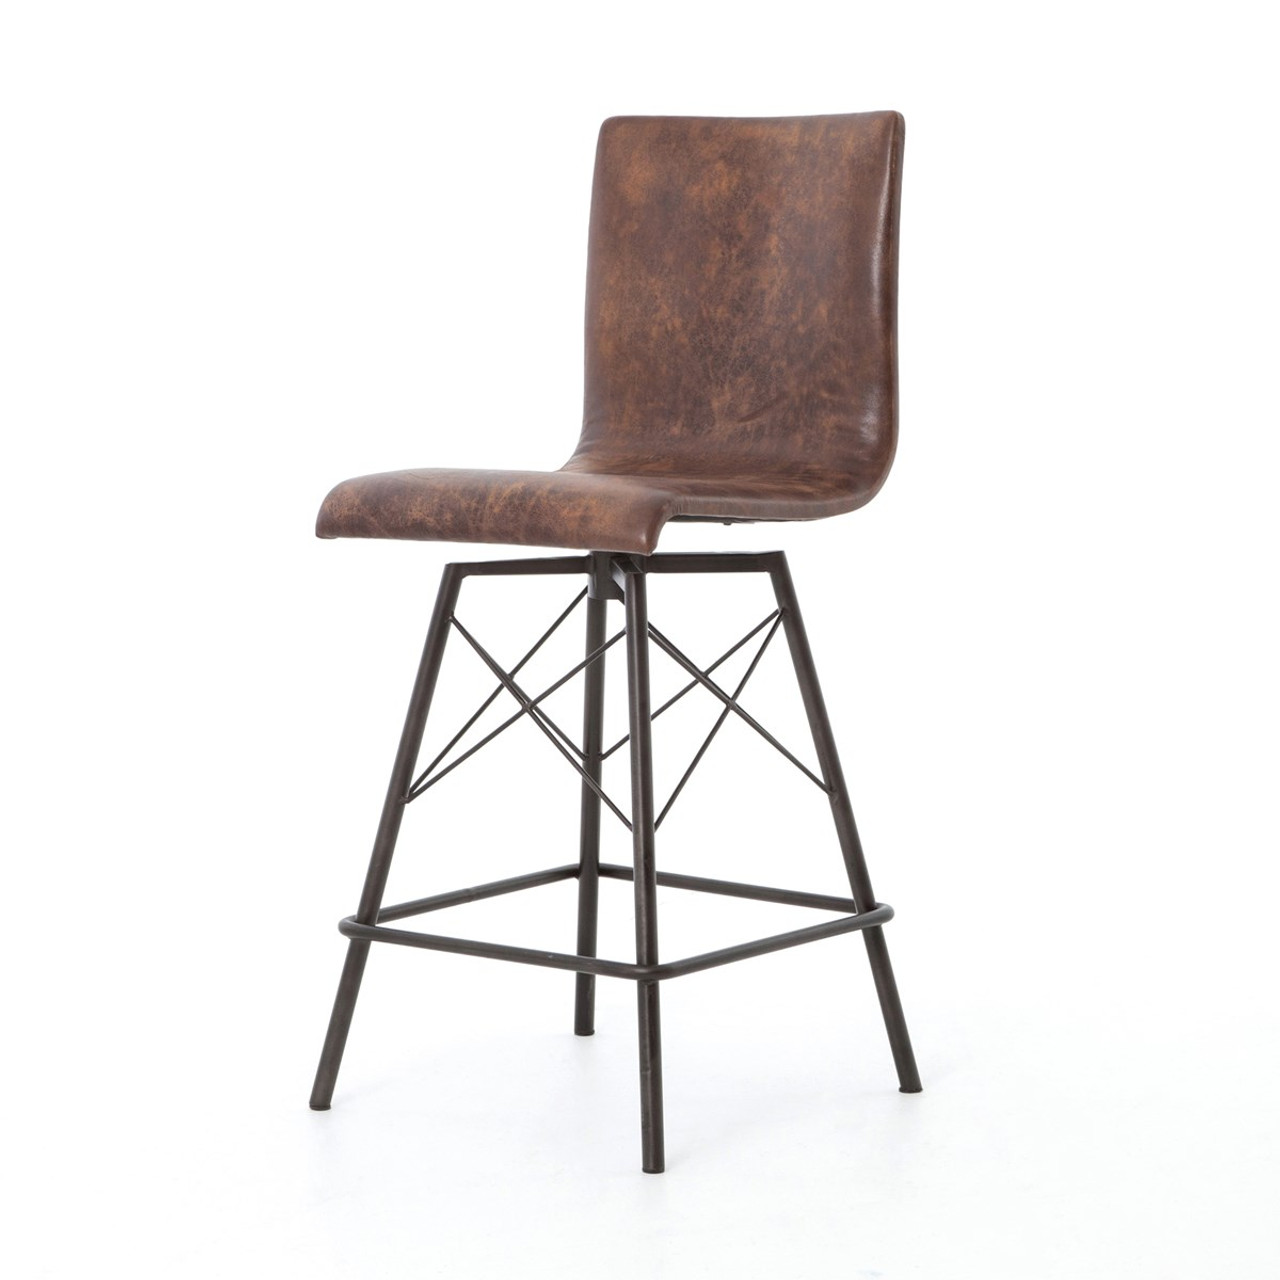 Awesome Diaw Distressed Leather Swivel Counterstool Short Links Chair Design For Home Short Linksinfo